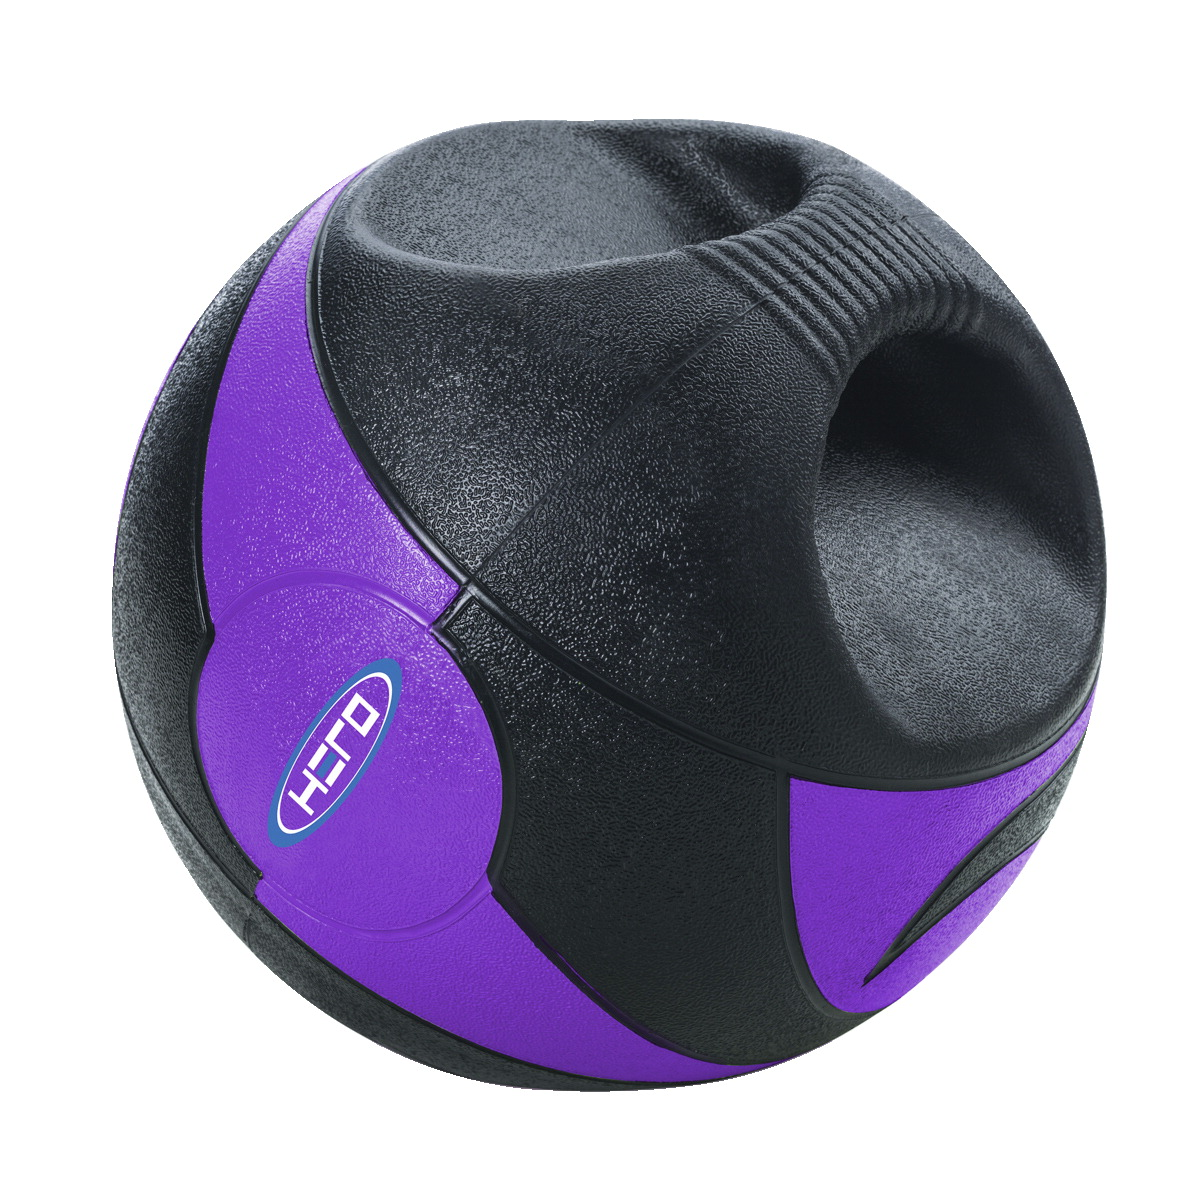 HERO Dual Handle Medicine Ball, 18 Pounds, Purple